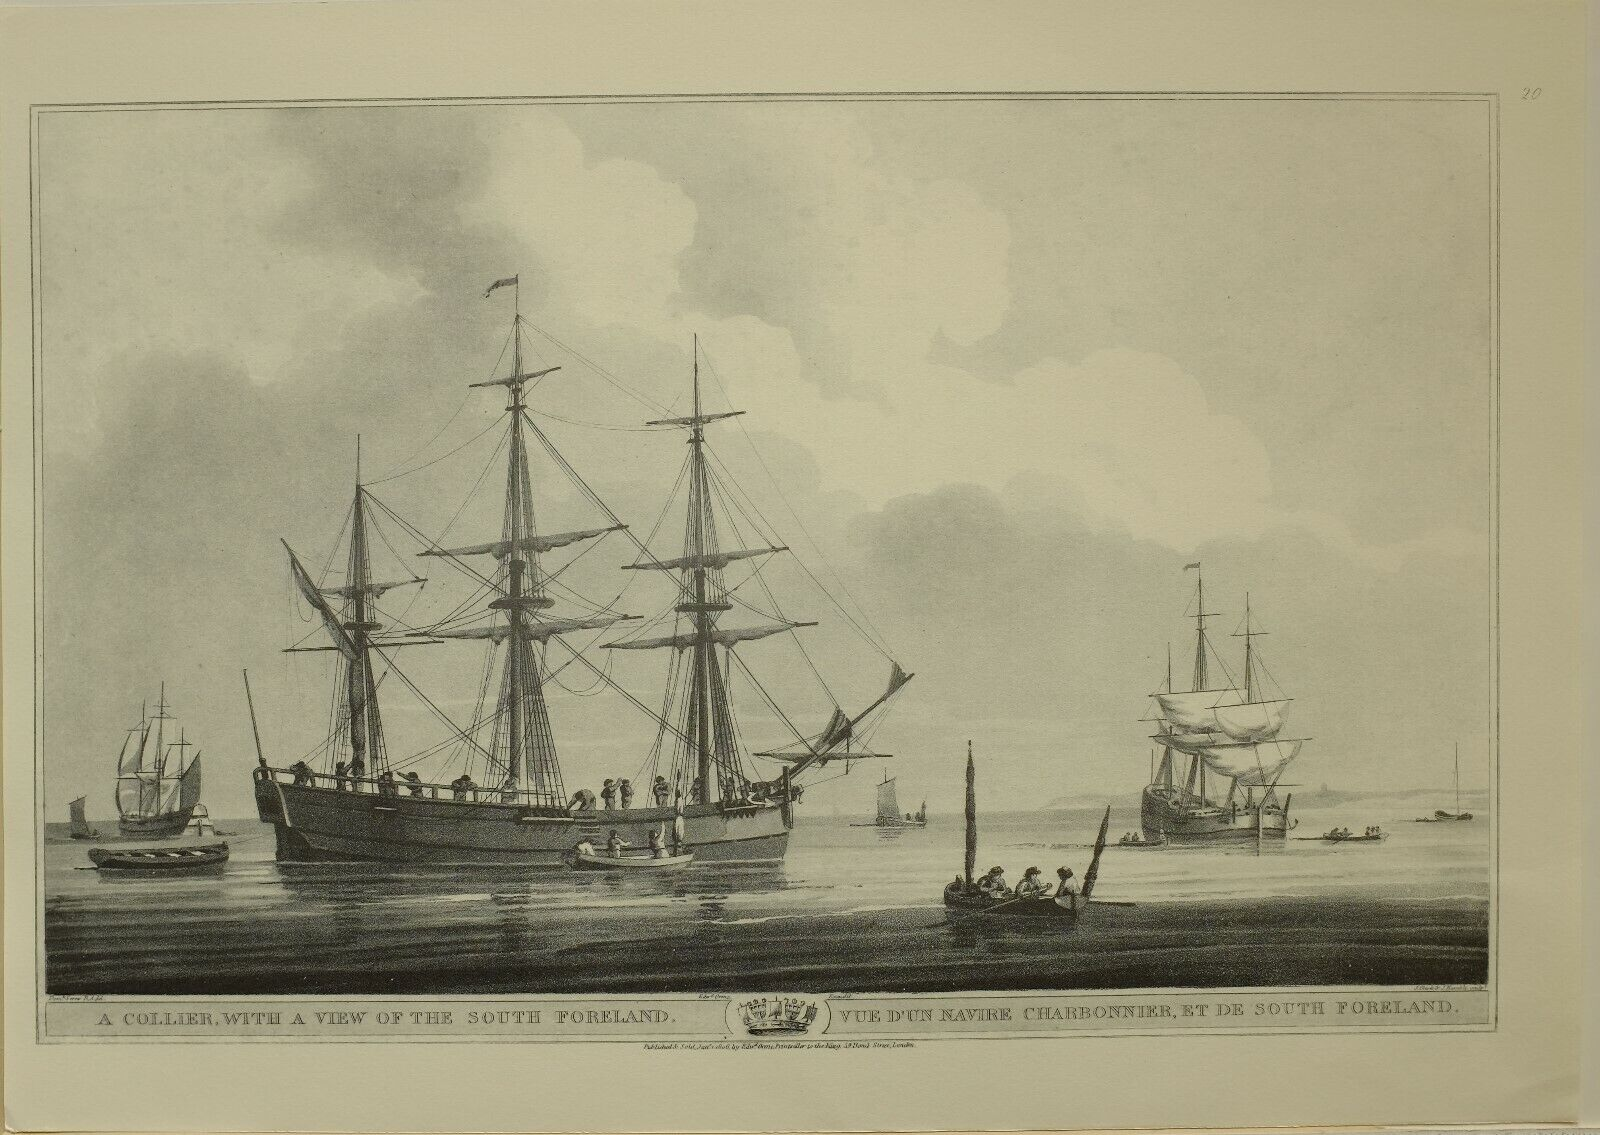 1805 Marine Aufdruck Collier View Of South Foreland  1979 Faksimile Liber